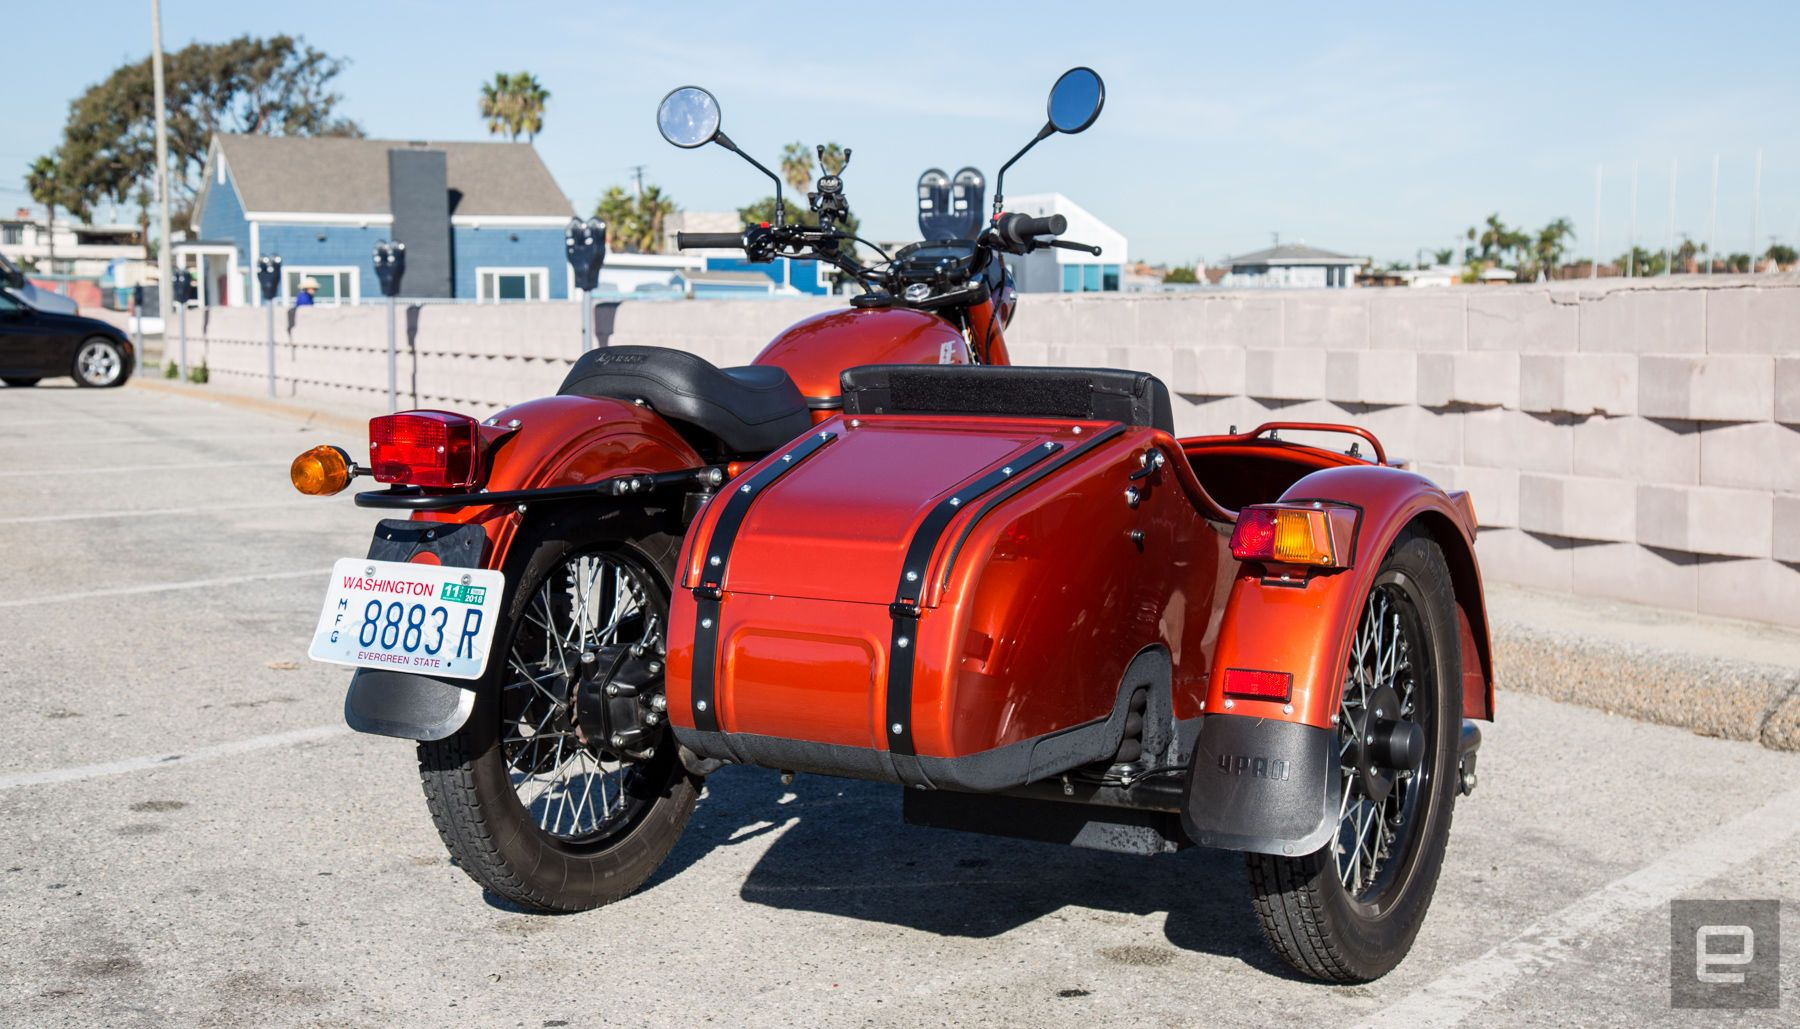 motorcycle with sidecar funny | ... festival in a Russian ... |Funny Motorcycle With Sidecar